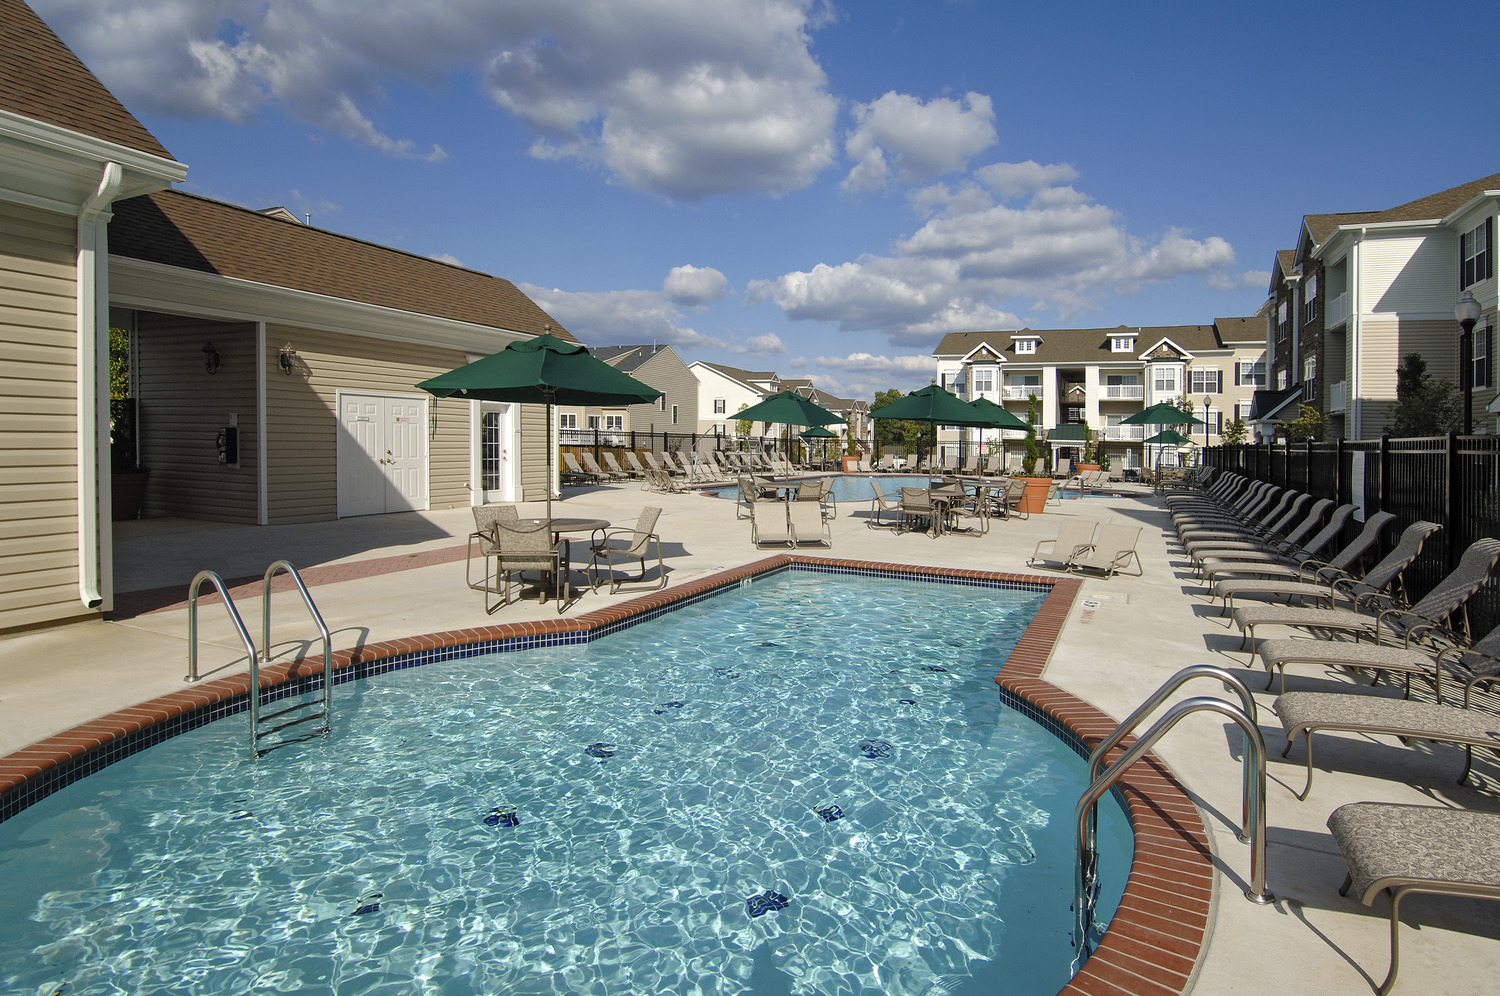 CBG builds The Elms at Montjoy, a 286 Market-Rate Apartments in Ellicott City, MD - Image #2